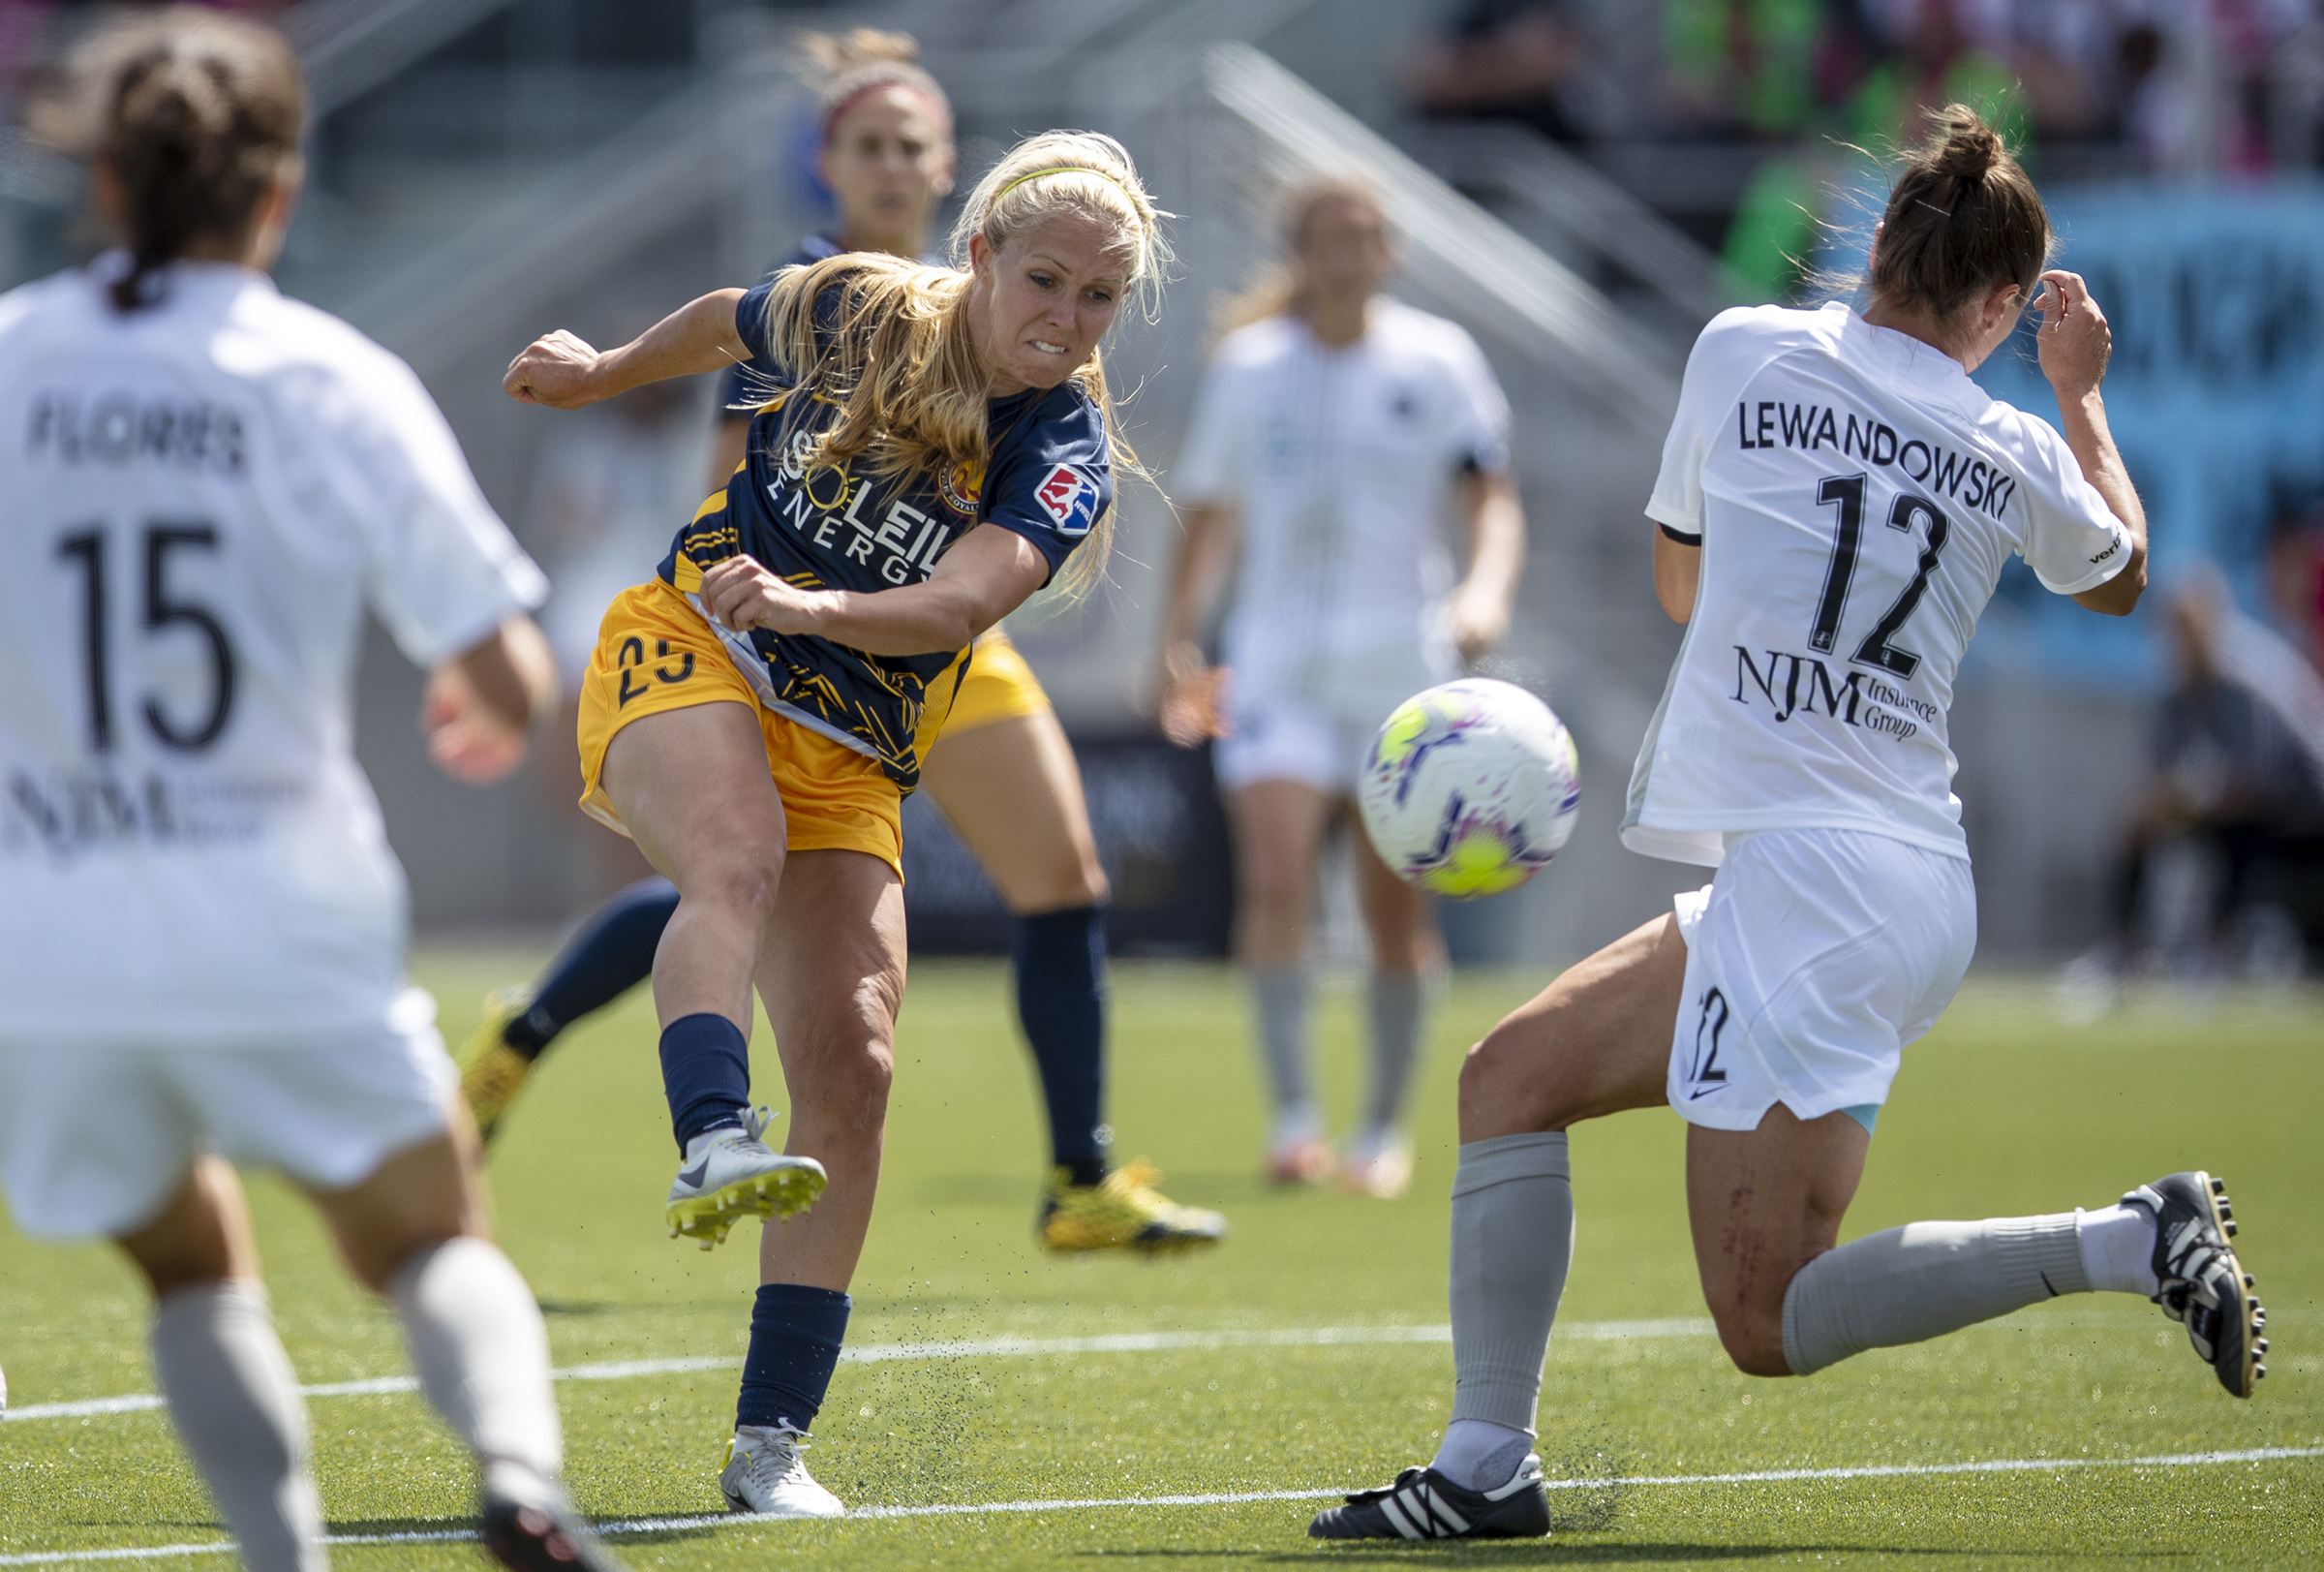 Utah Royals FC forward Brittany Ratcliffe (25) fires a shot into the leg of Sky Blue FC defender Gina Lewandowski (12) as the Utah Royals and Sky Blue play in the National Women's Soccer League Challenge Cup at Zions Bank stadium in Herriman on Saturday, July 4, 2020. Utah won 1-0.